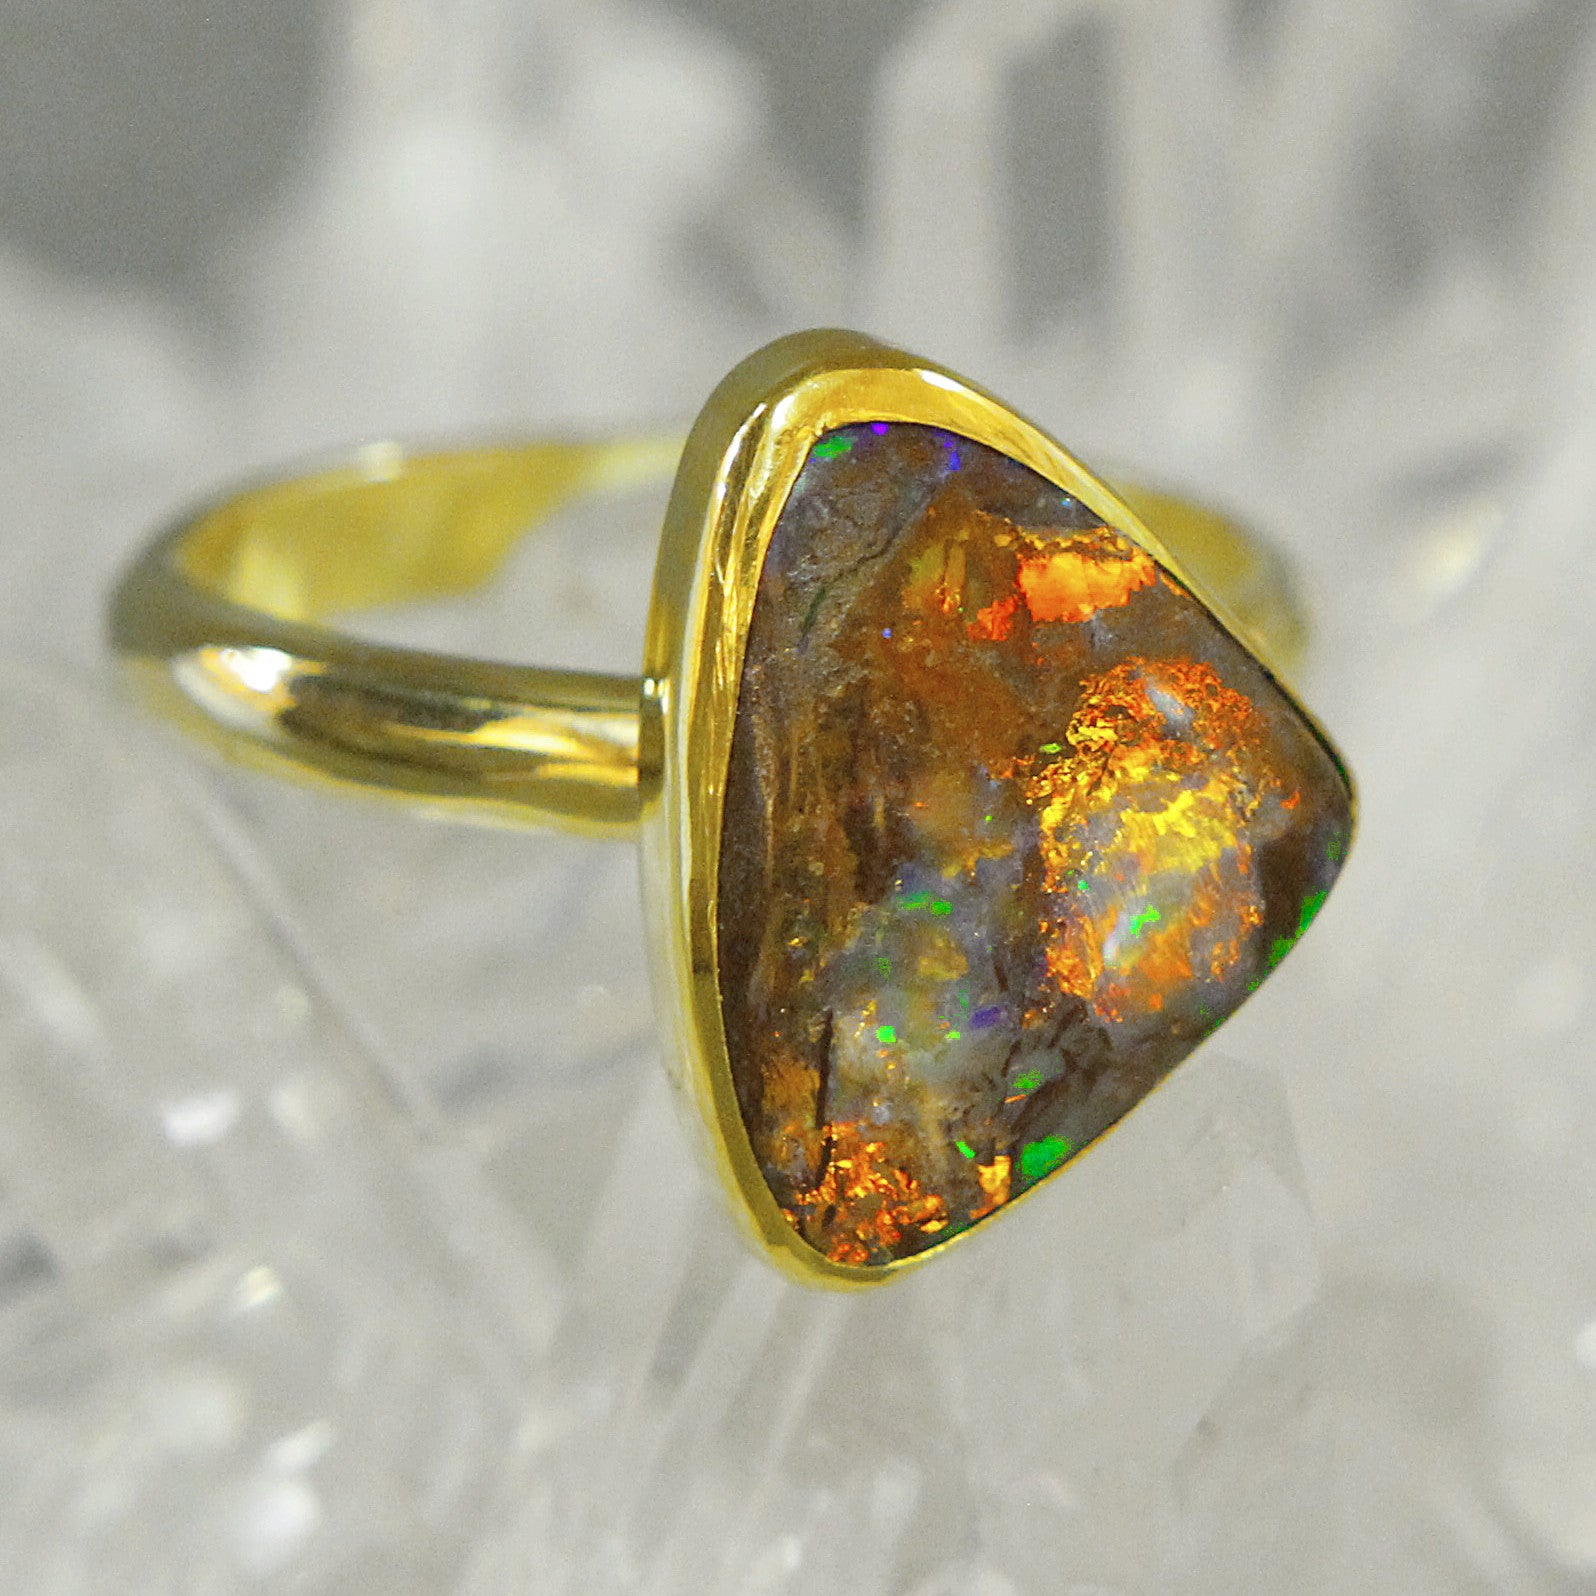 jr ideas styles stunning opal htm boulder black beautiful unique engagement jfine rings wedding hbz pictures